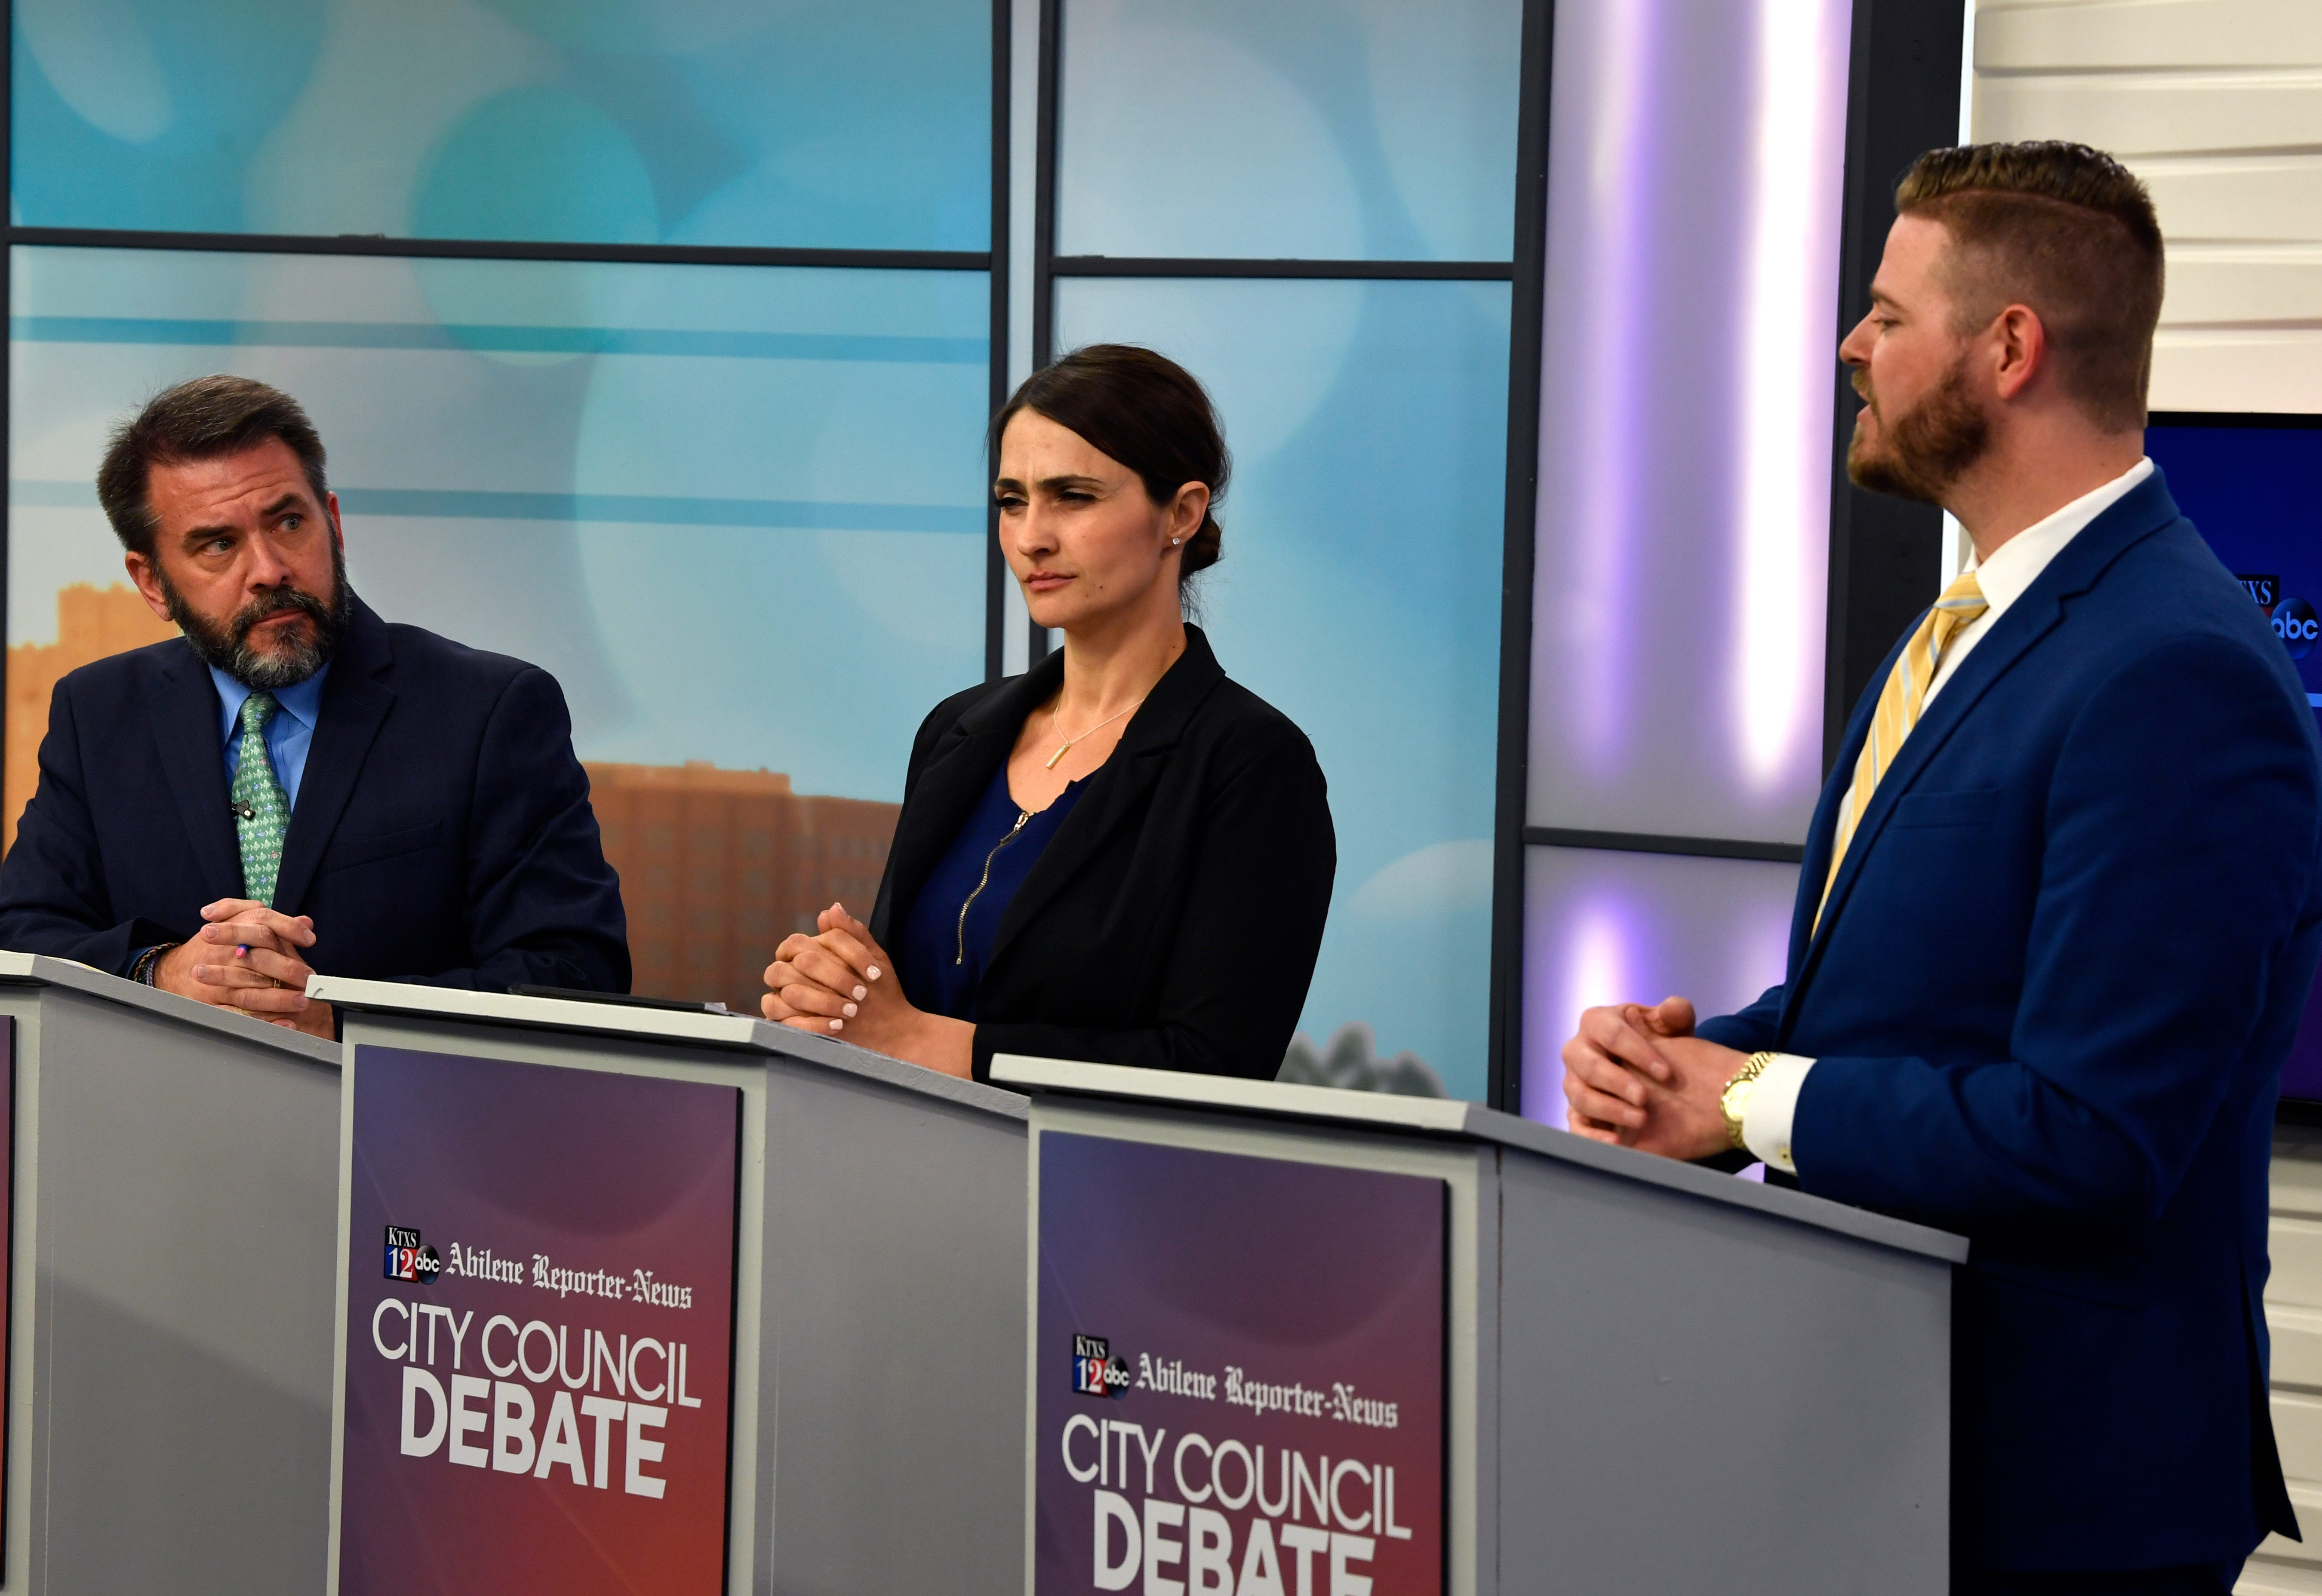 Incumbent Place 5 Abilene City Councilman Kyle McAlister (left) and challenger Cynthia Alvidrez listen as challenger Cory Clement explain his positions Monday April 15, 2019. The joint KTXS and Abilene Reporter-News debate aired Tuesday.